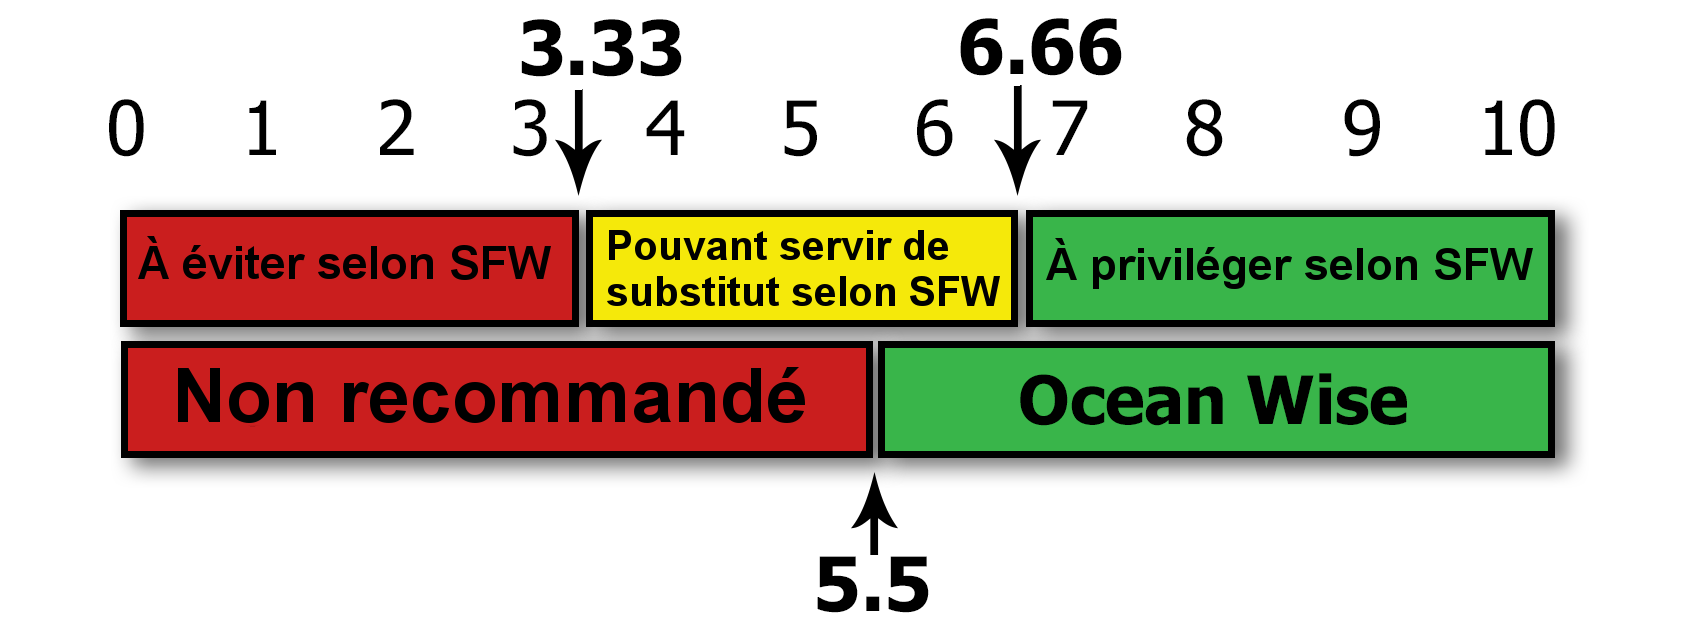 ocean-wise-recommendations-2